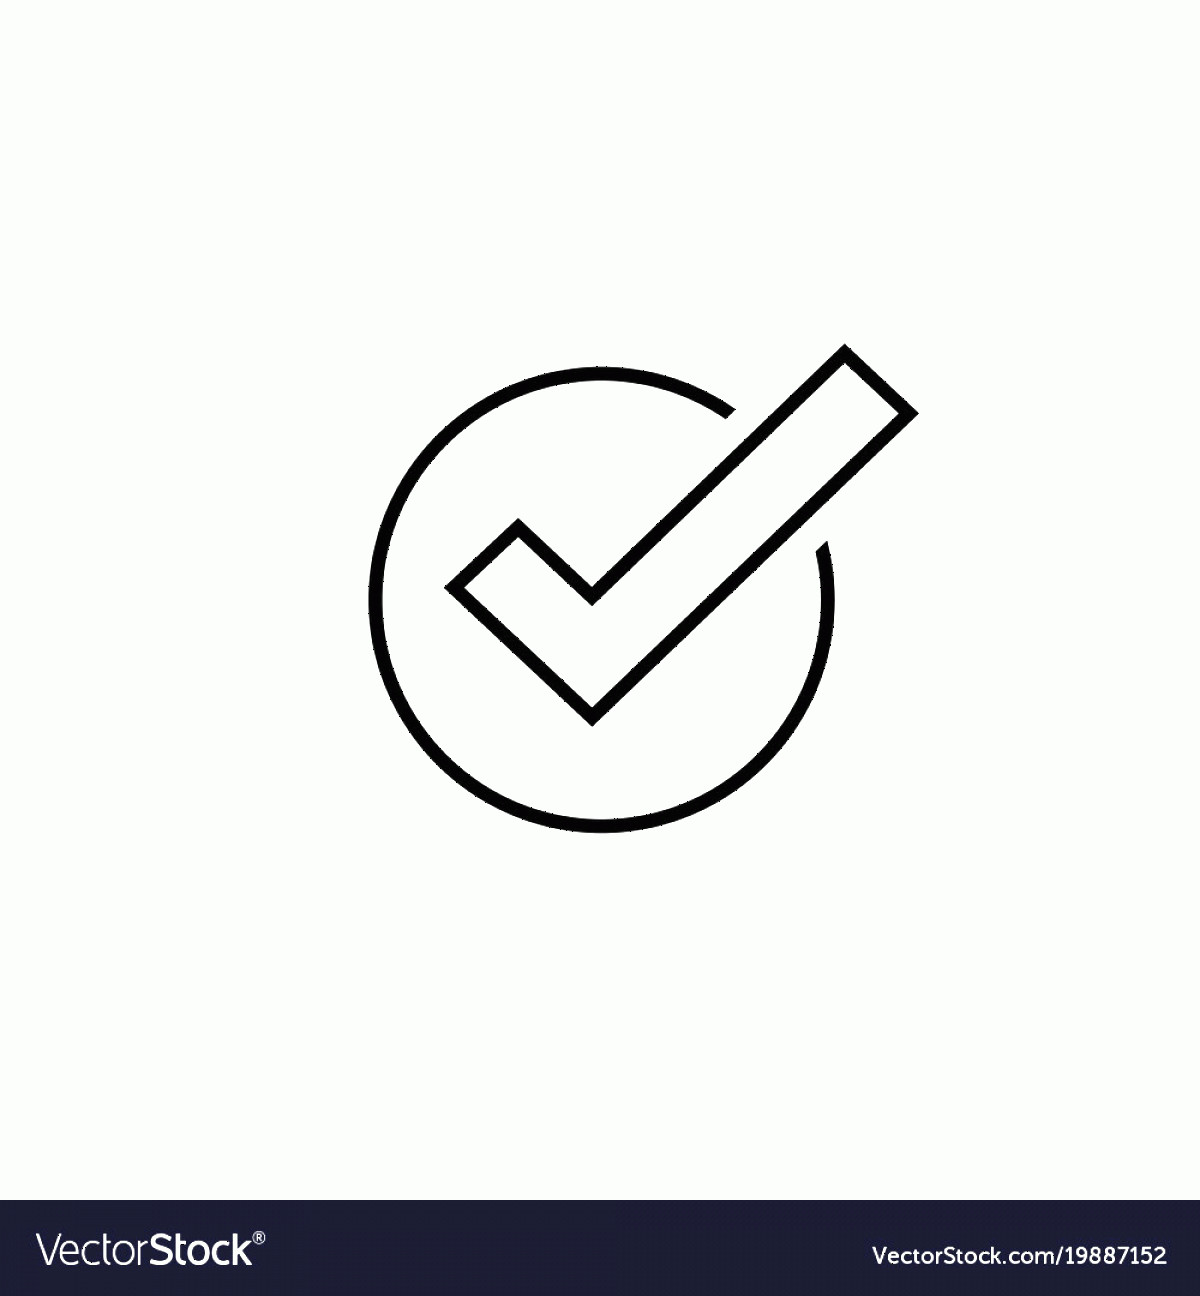 Symbol Vector Clip Art: Tick Icon Symbol Line Art Outline Vector